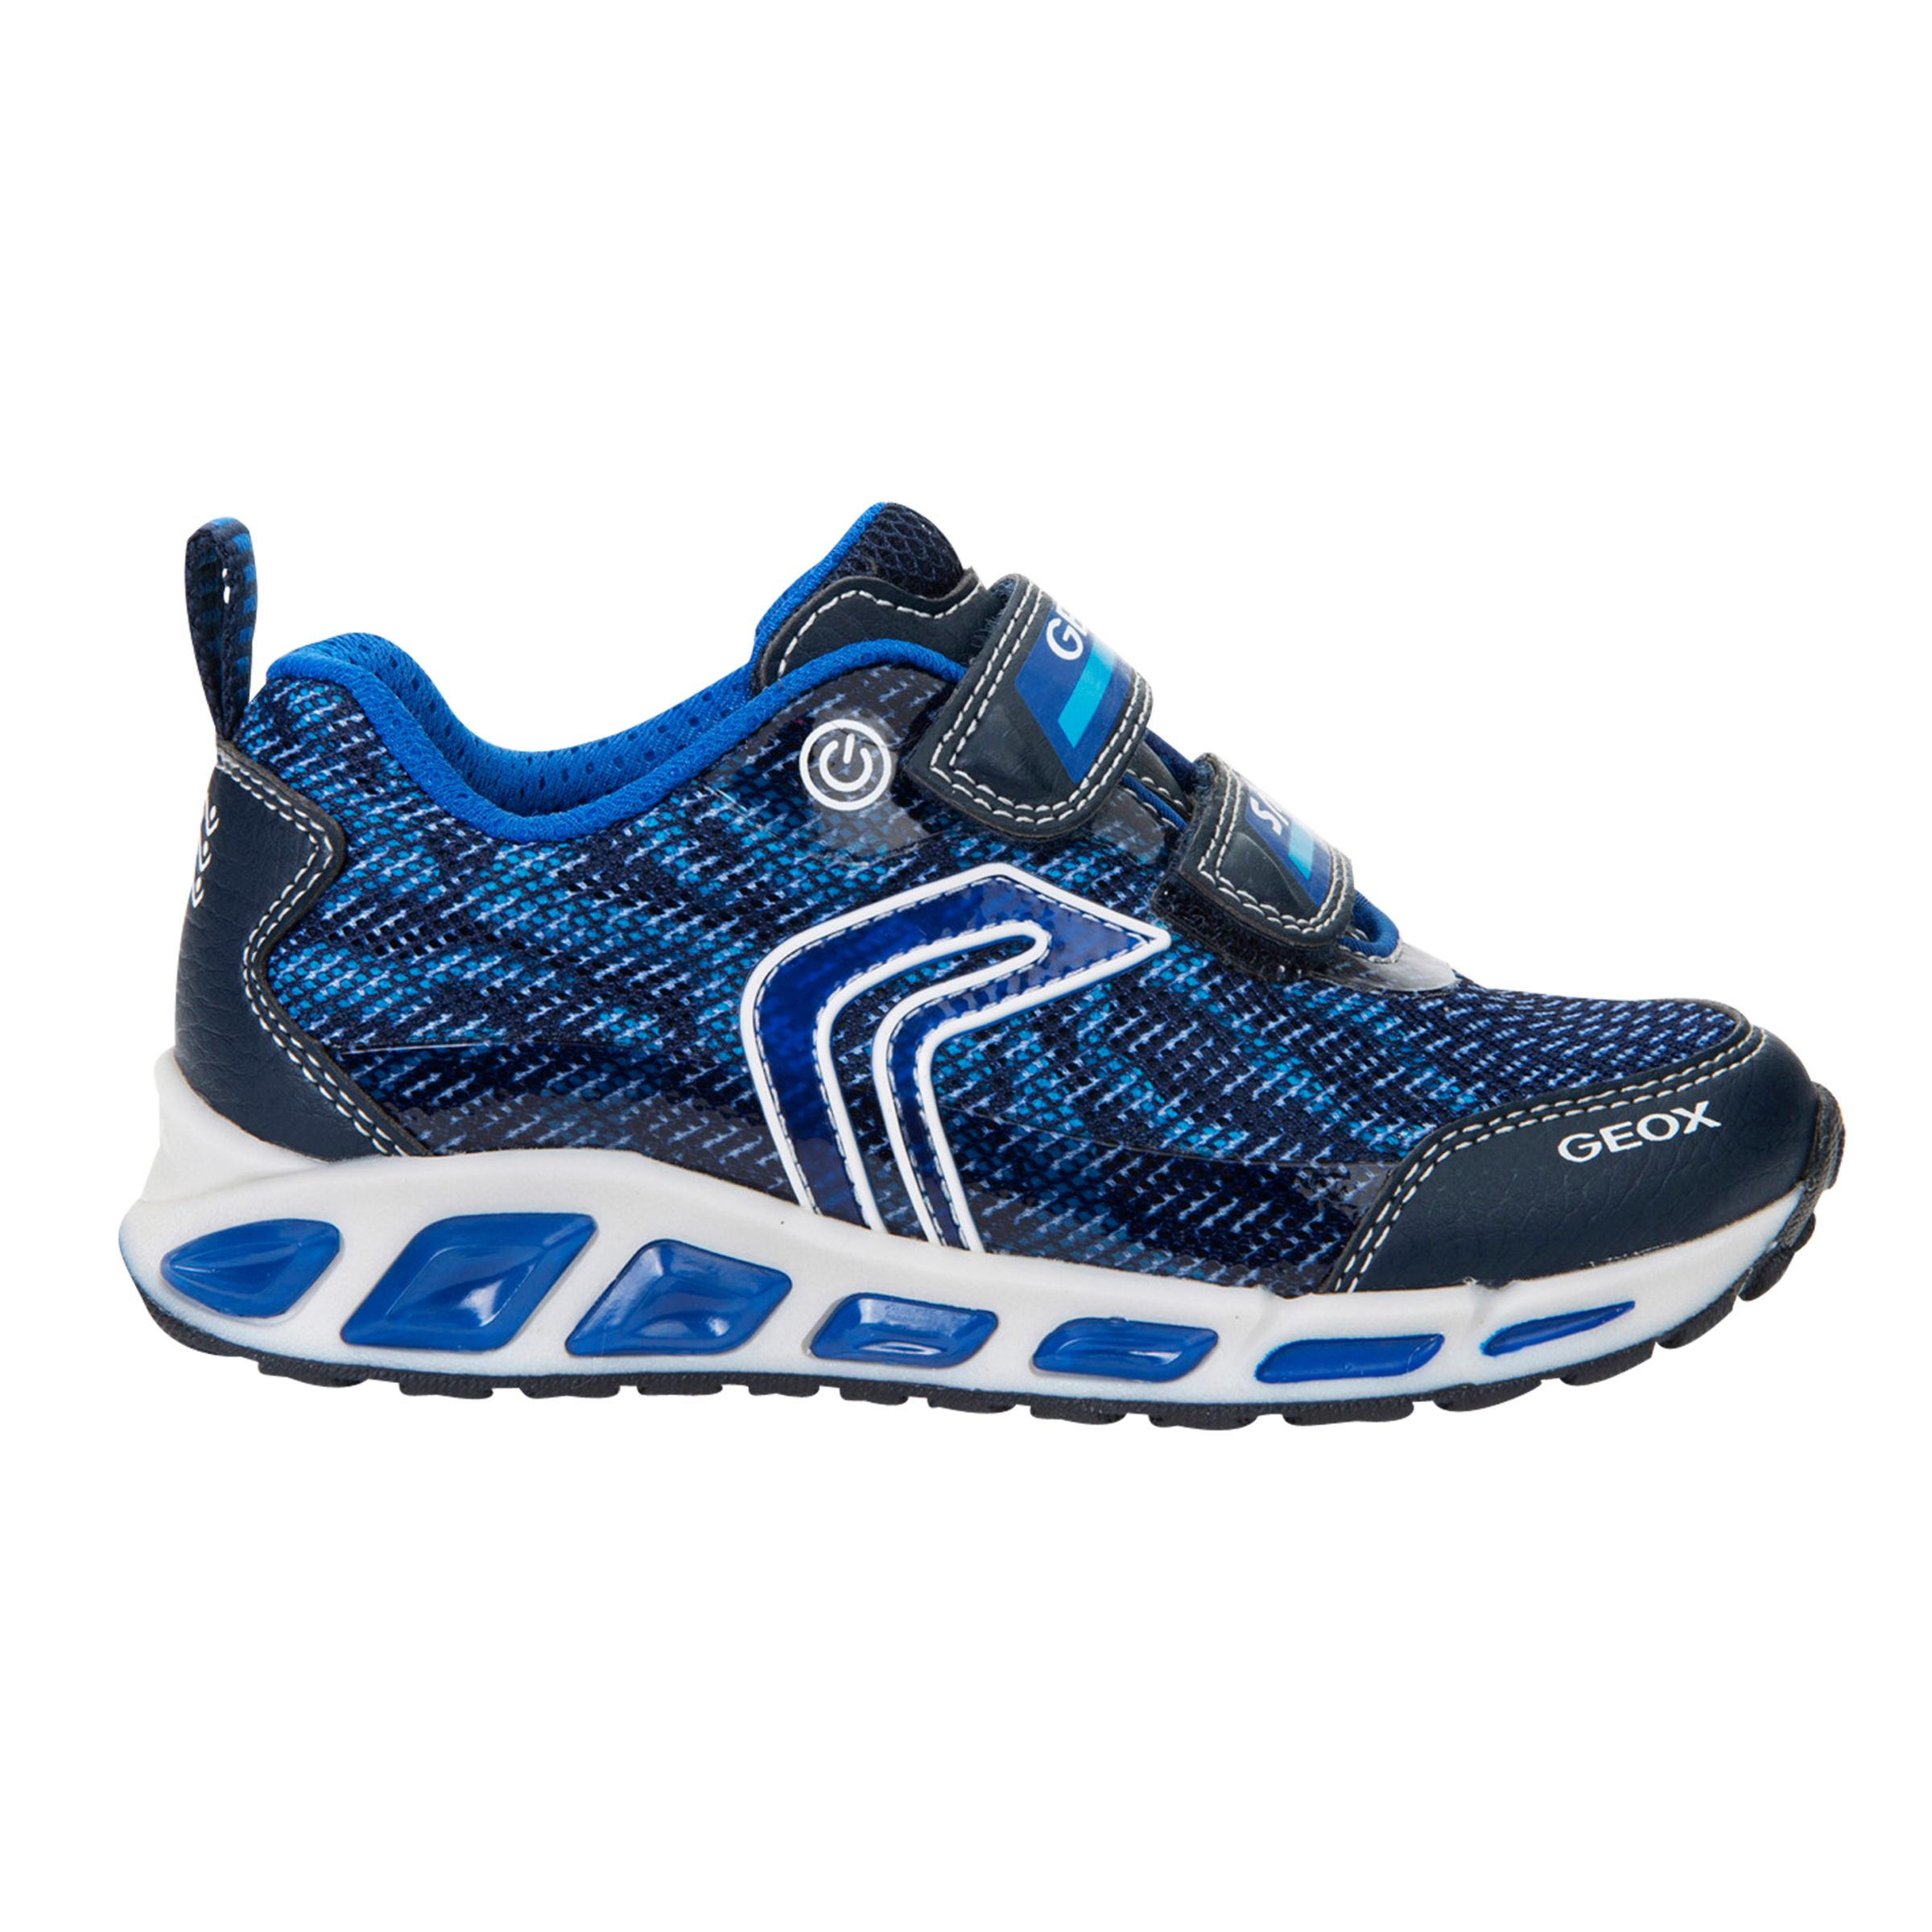 Geox Geox Children's Shuttle Light-Up Double Riptape Trainers, Navy/Royal Blue